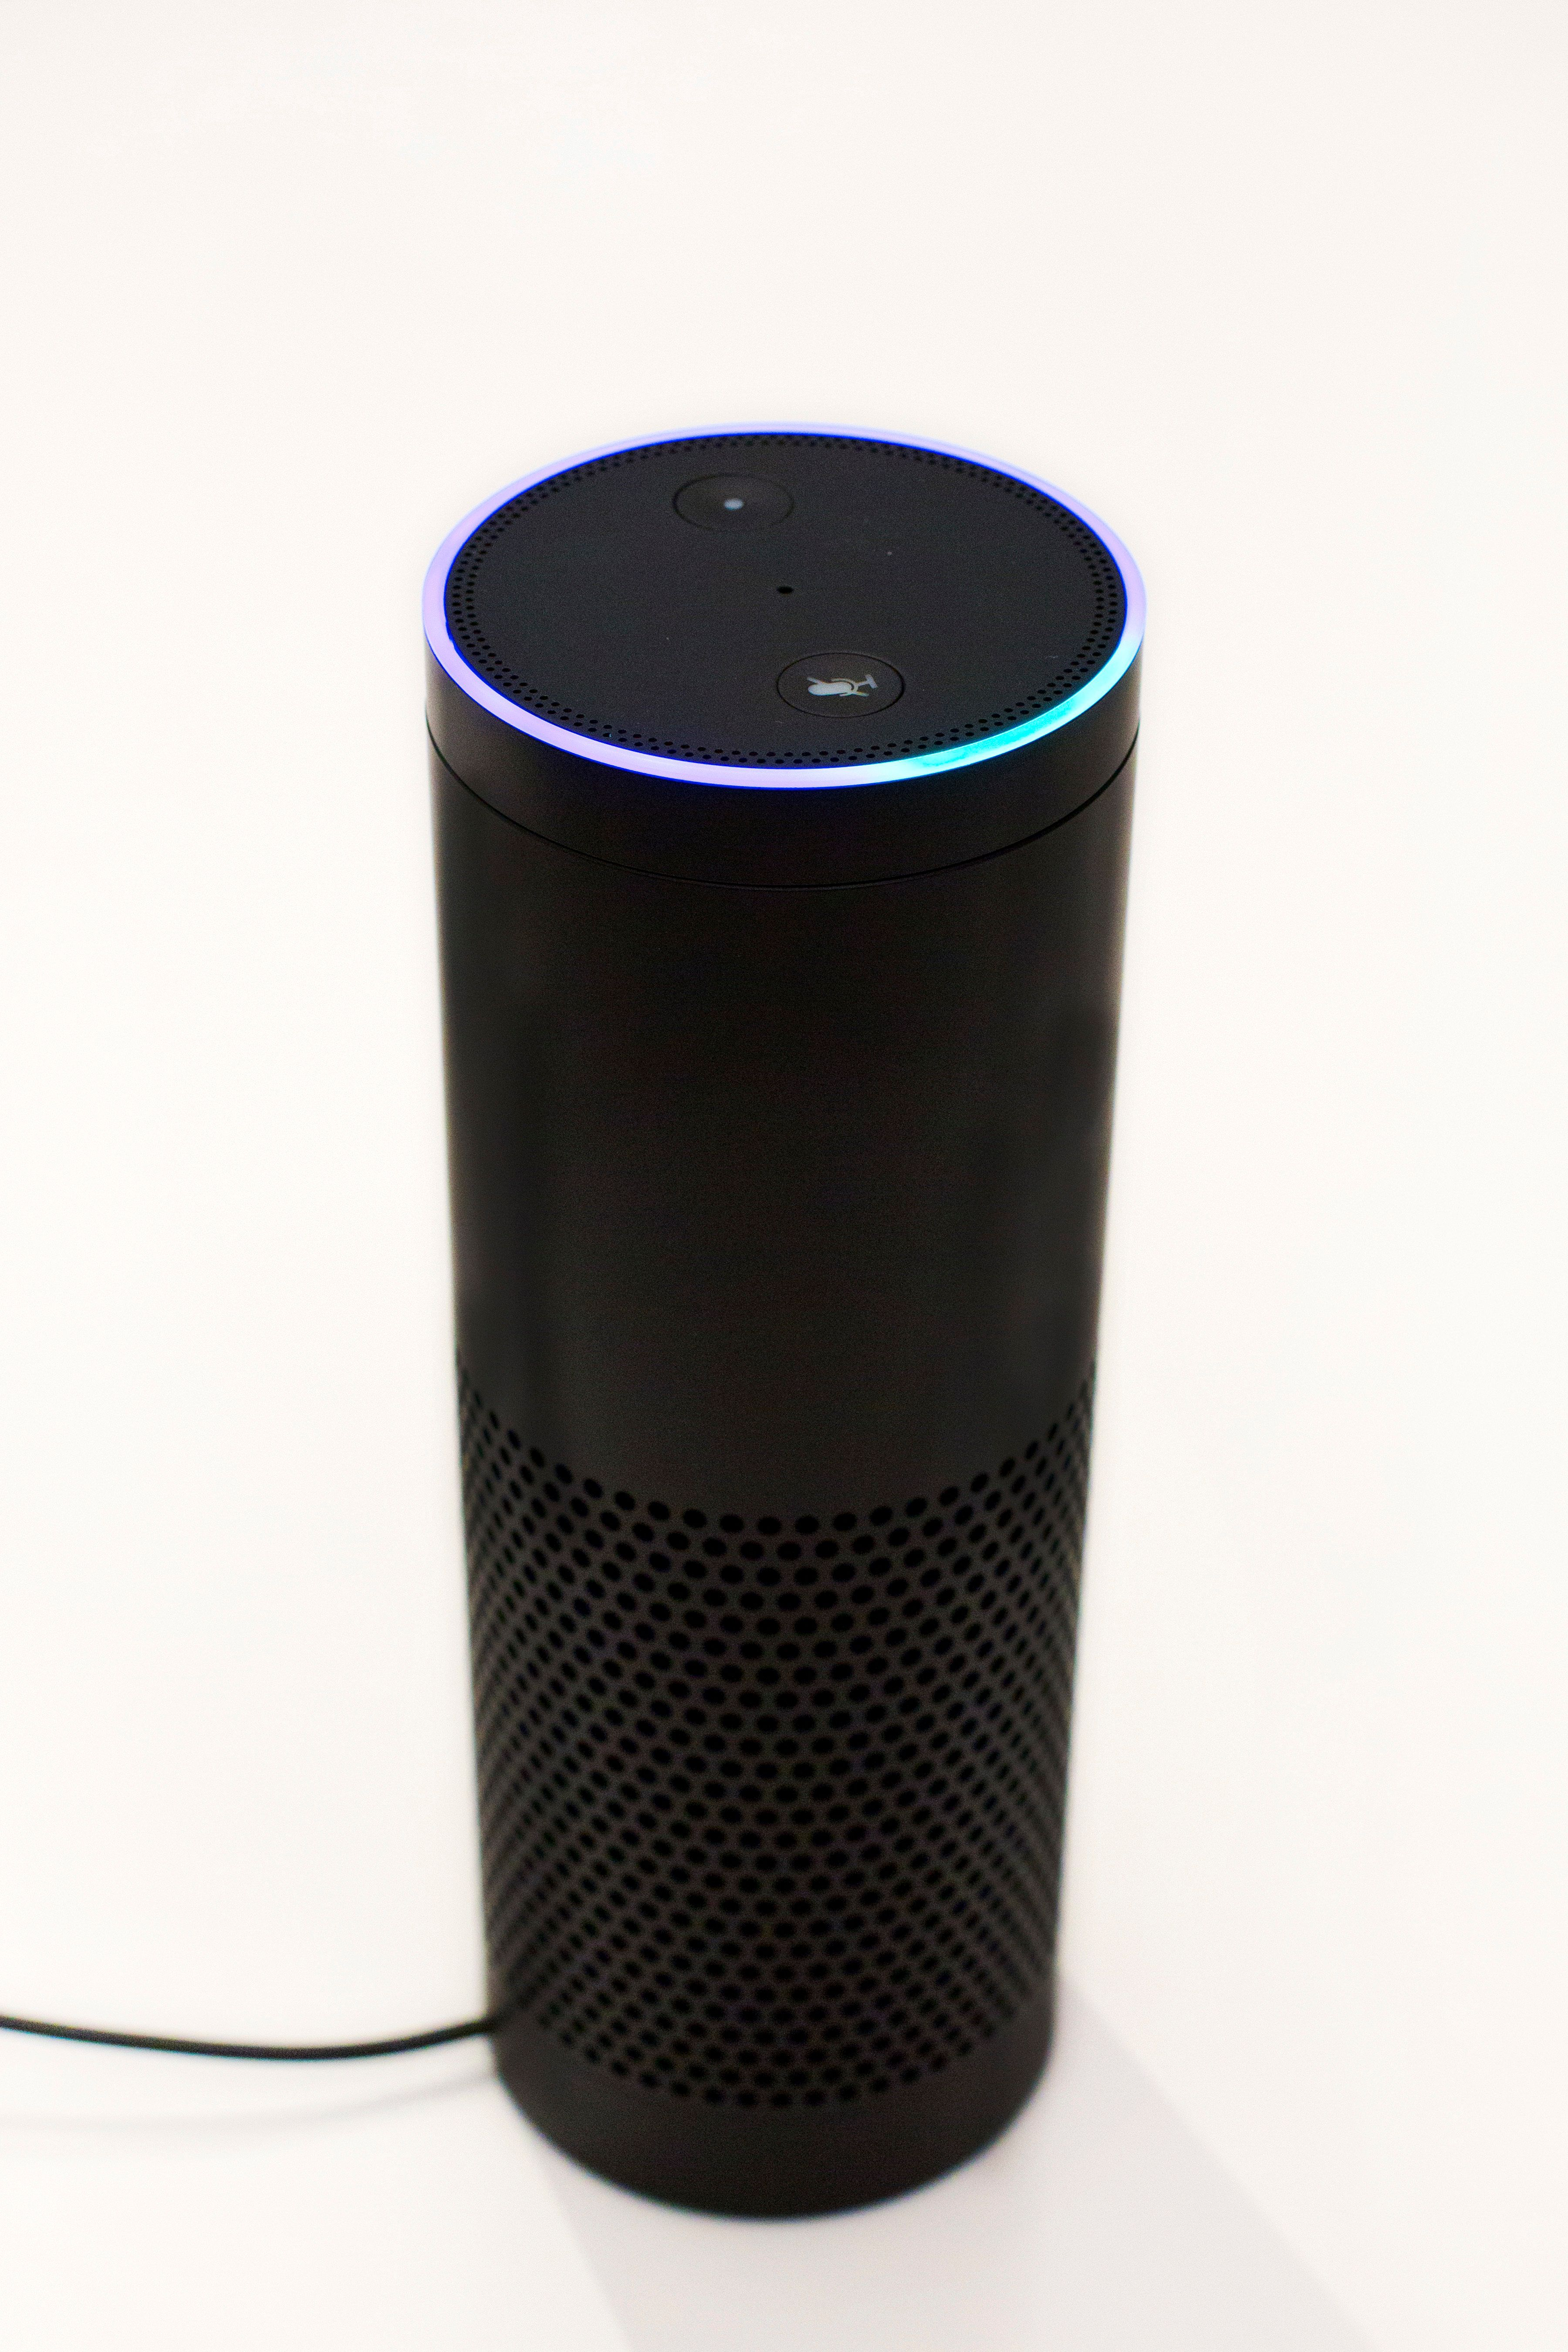 In this June 14, 2018, photo an Amazon Echo is displayed in New York. Big banks and financial companies have started to offer banking through virtual assistants, Amazon's Alexa, Apple's Siri, and Google's Assistant, in a way that will allow customers to check their balances, pay bills and, in the near future, send money just with their voice. Regional banking giant U.S. Bank is the first bank to be on all three services, Alexa, Siri and Assistant. (AP Photo/Mark Lennihan)